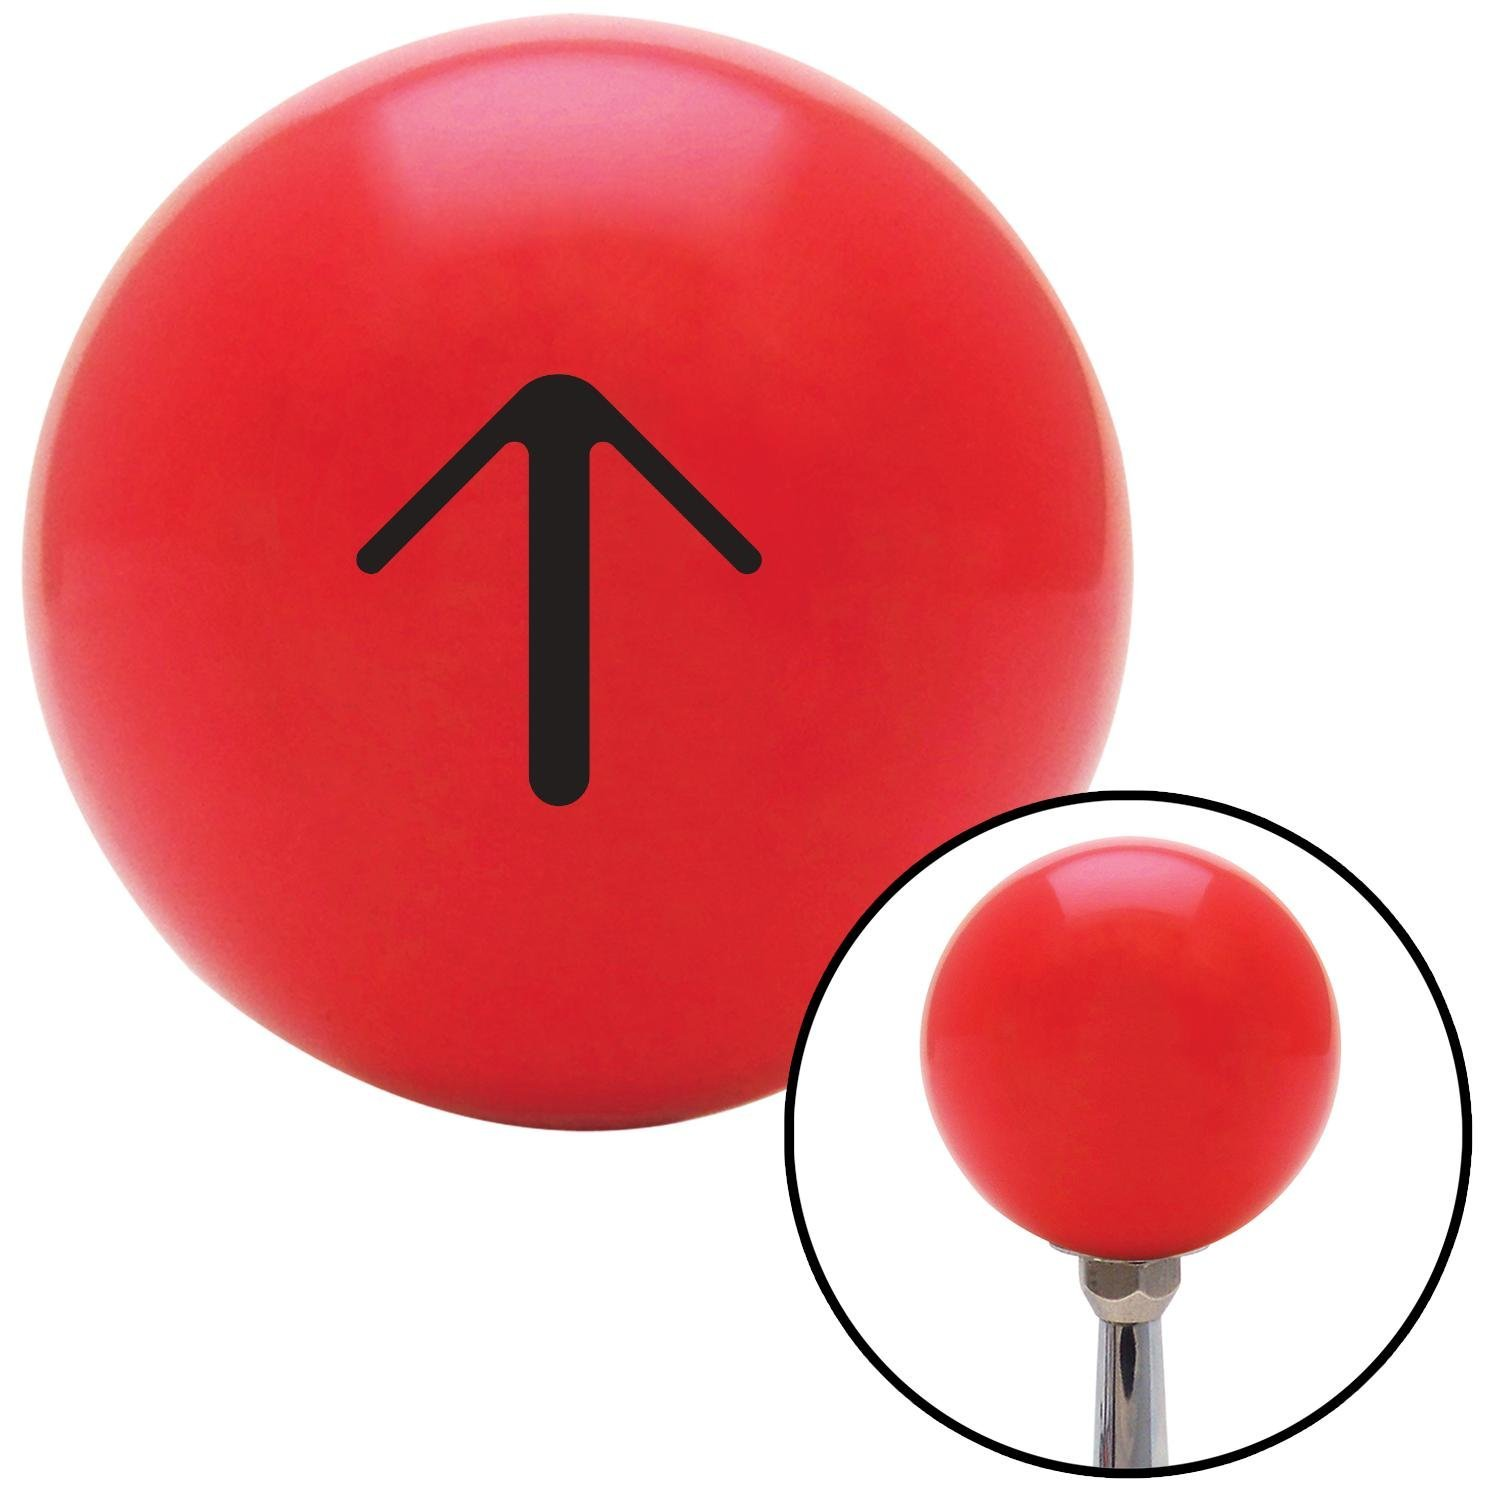 Black Pointing Solid Arrow Up American Shifter 94189 Red Shift Knob with M16 x 1.5 Insert